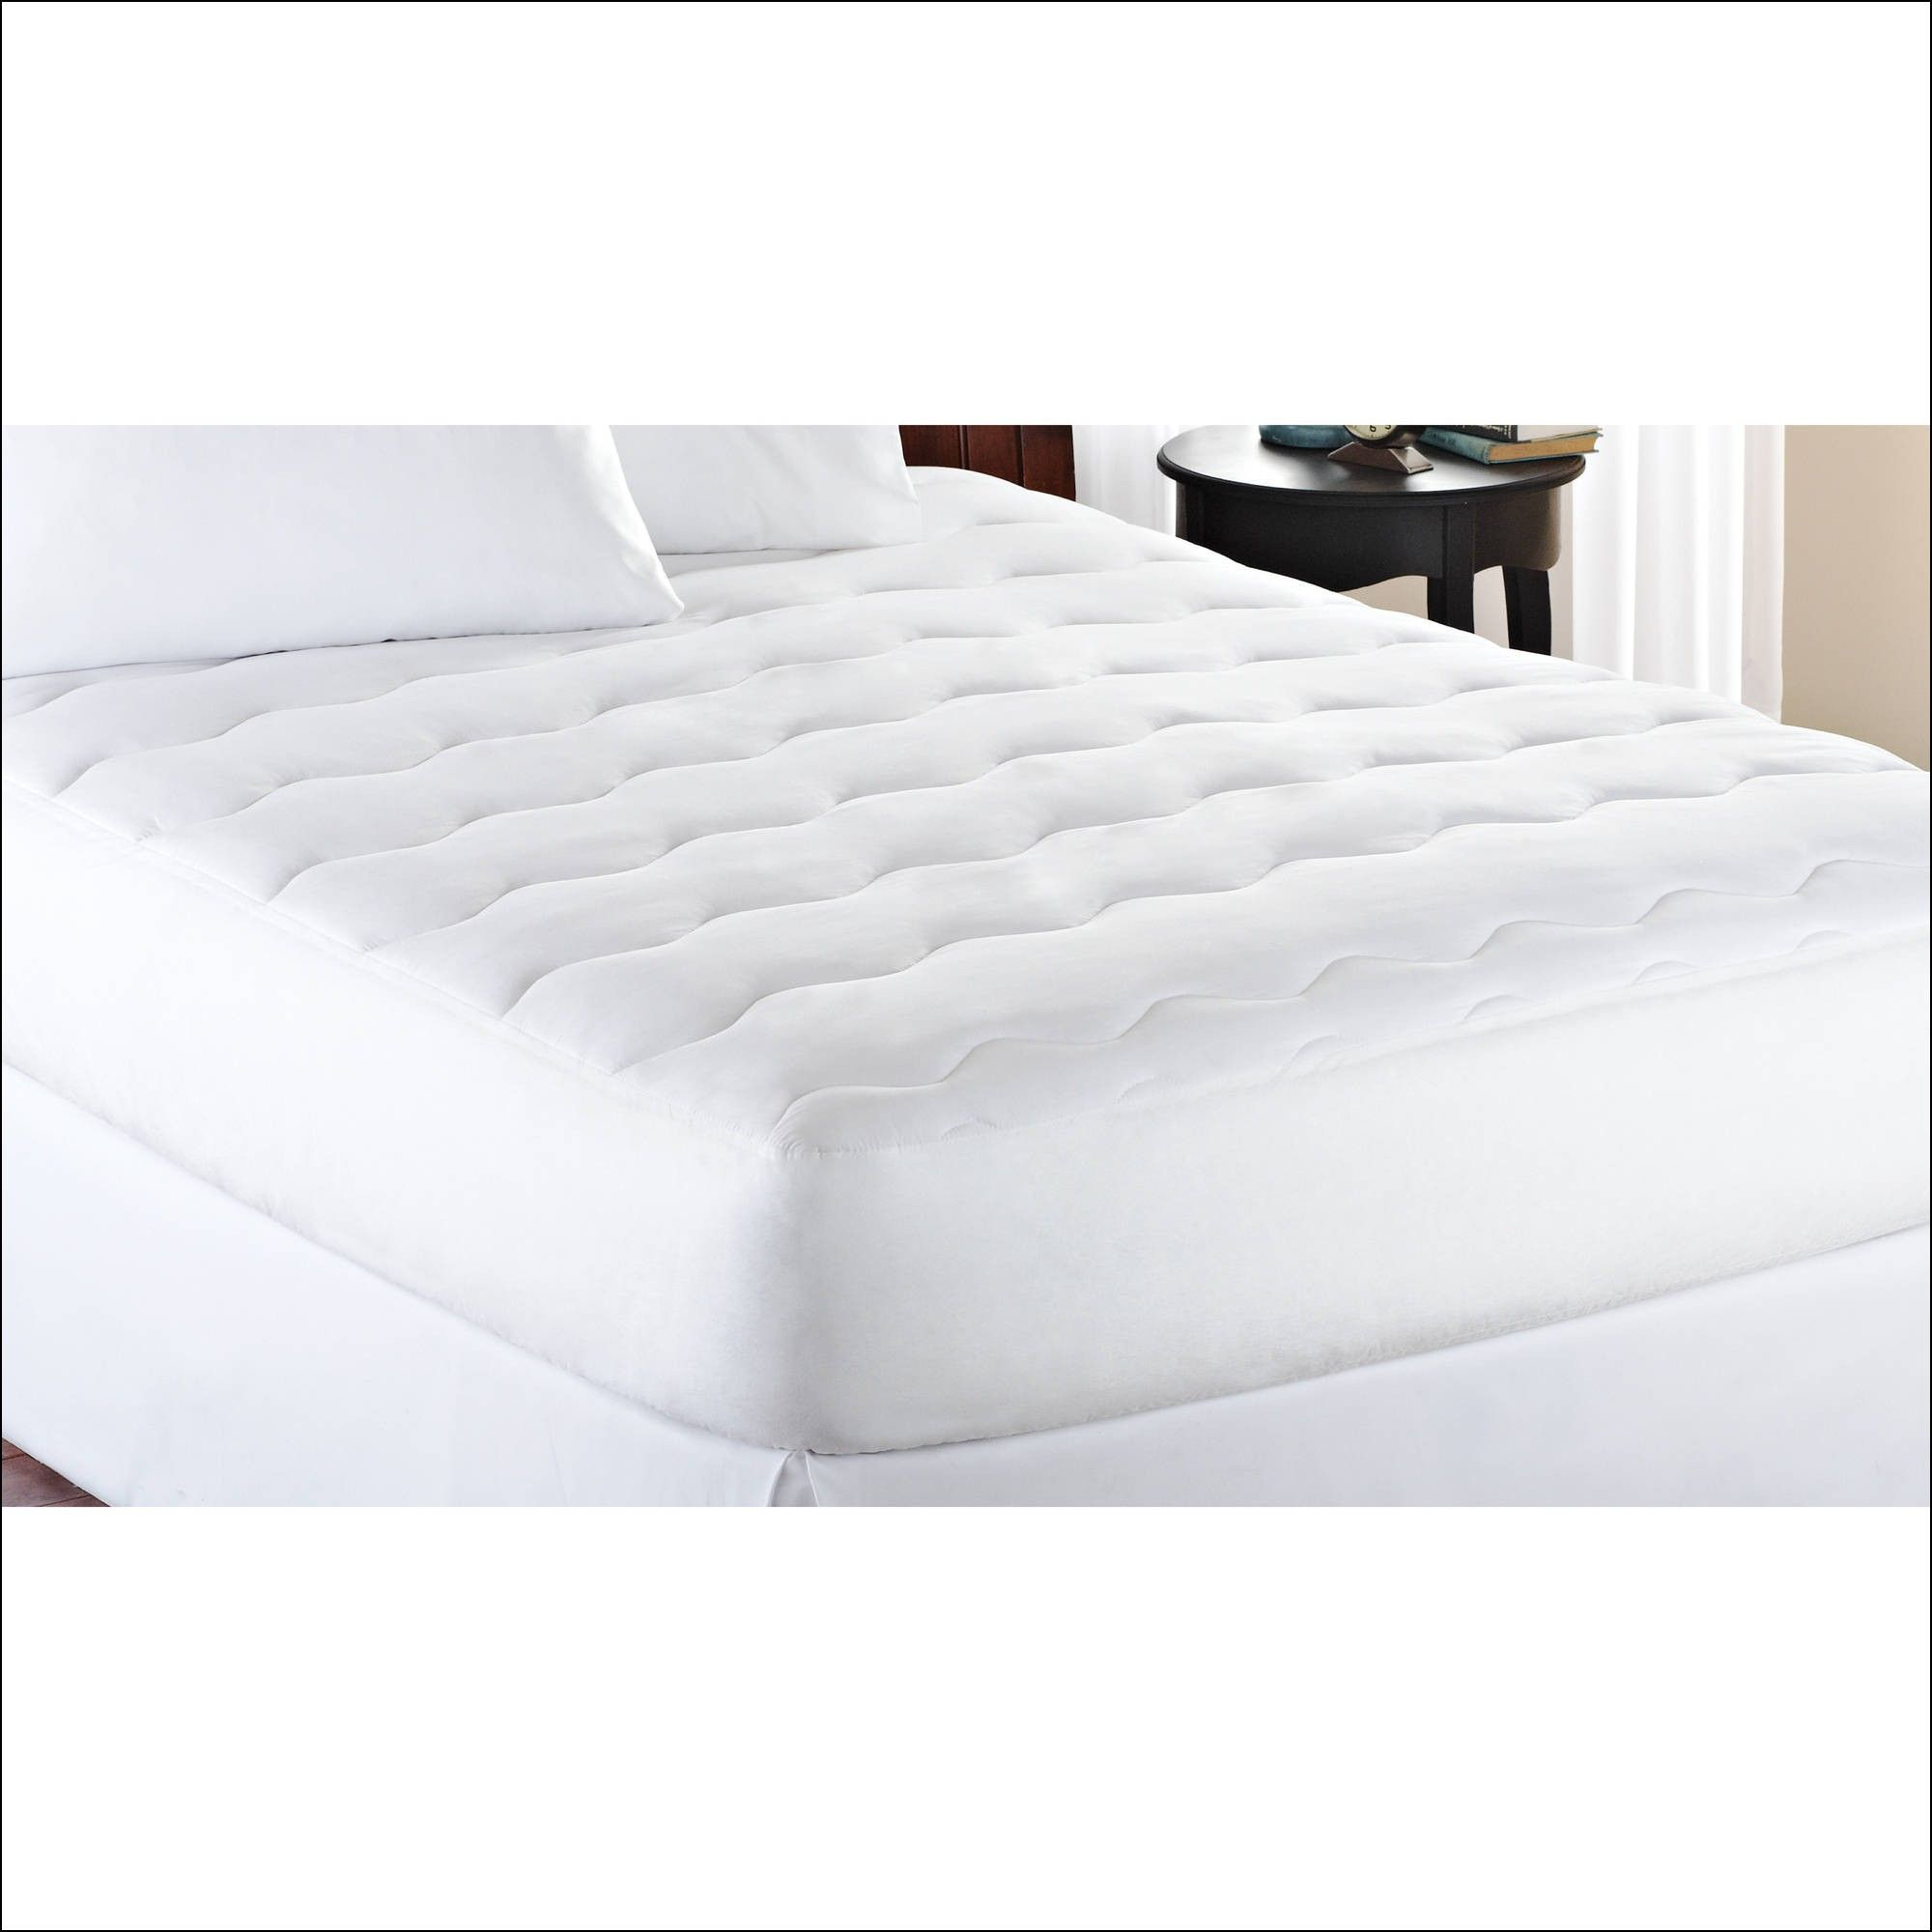 mattress top delivery pillow extravagant htm day next naturals topper img c firmness select mattresses divan set sticker